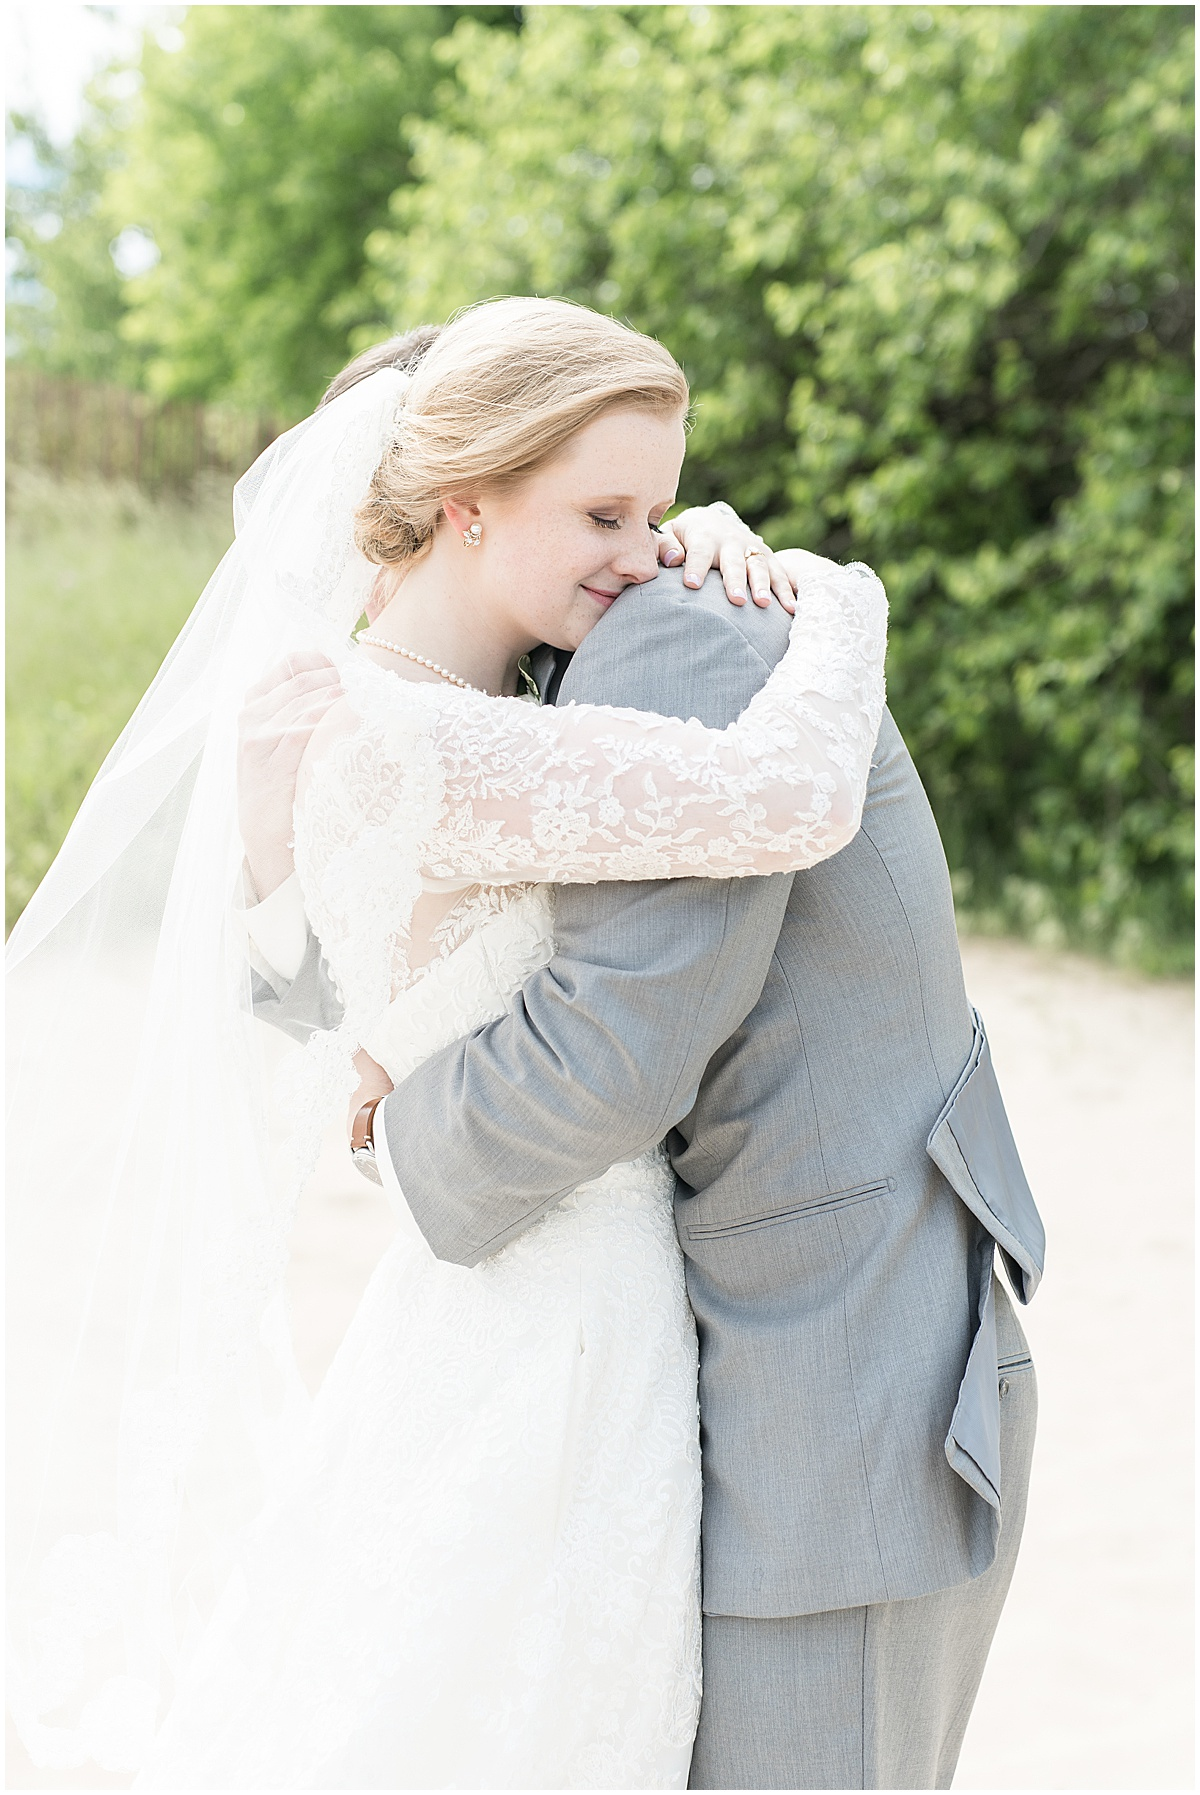 Bride and groom photos at Traders Point Creamery wedding in Zionsville, Indiana